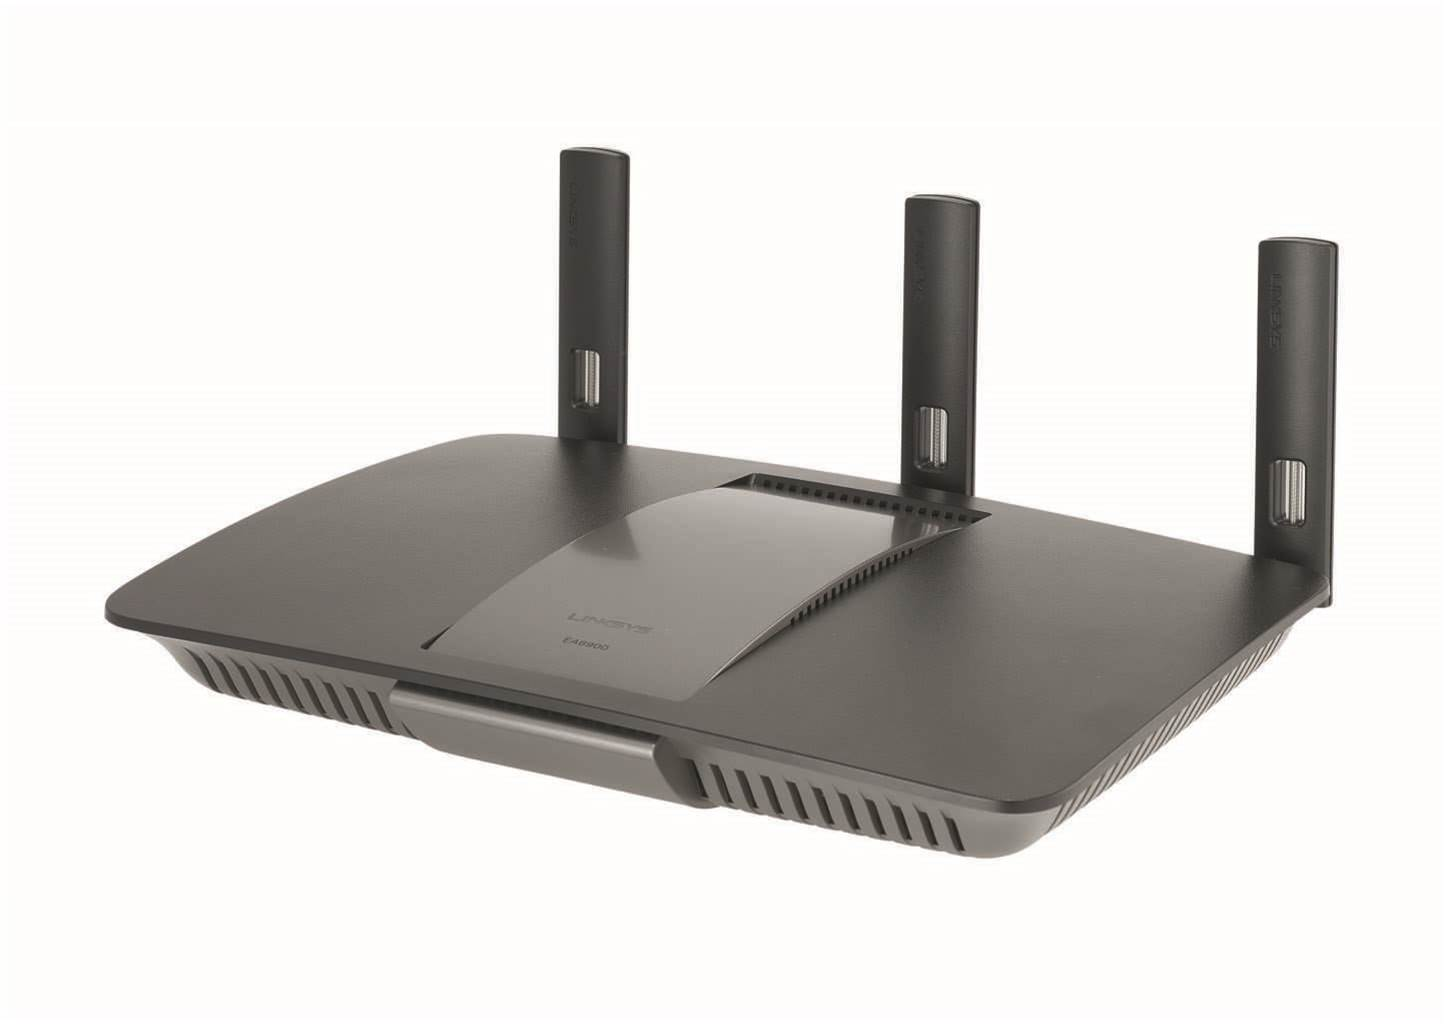 Linksys EA6900: an excellent 802.11ac router